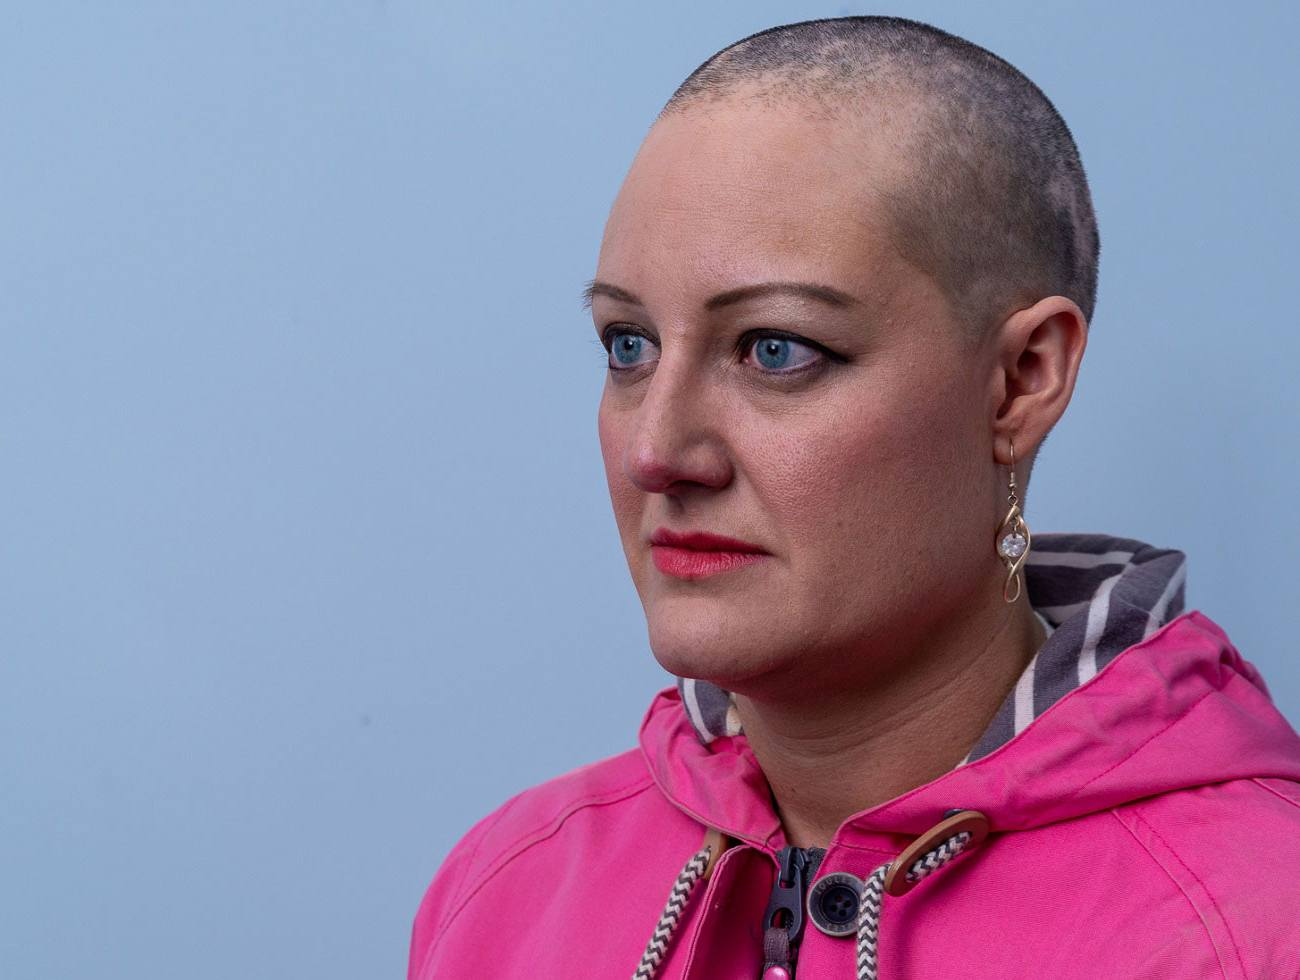 Julie, who has alopecia, against a blue background, looking off camera